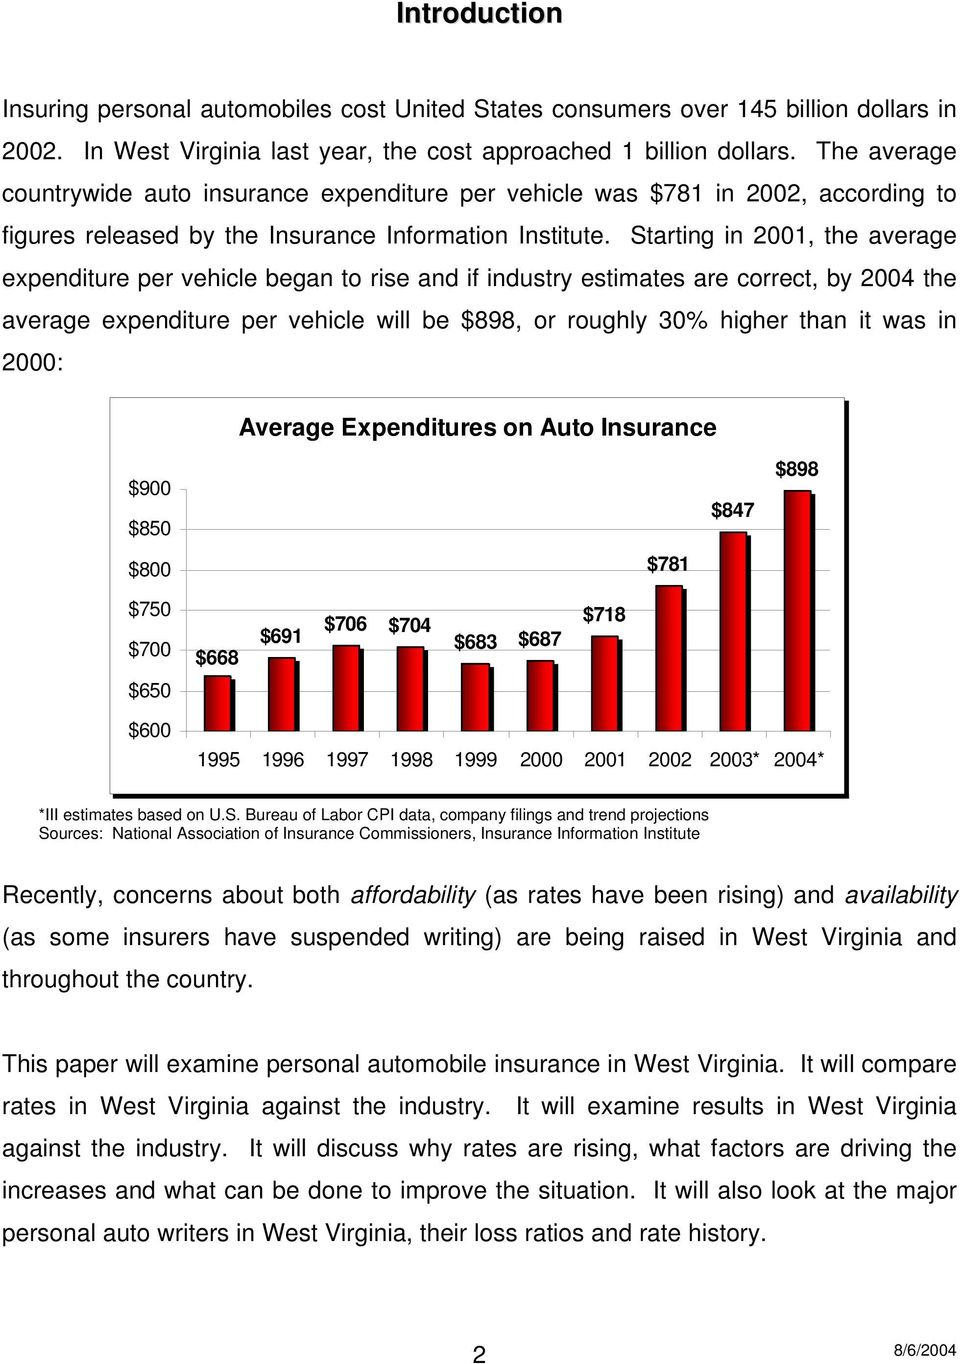 Starting in 2001, the average expenditure per vehicle began to rise and if industry estimates are correct, by 2004 the average expenditure per vehicle will be $898, or roughly 30% higher than it was